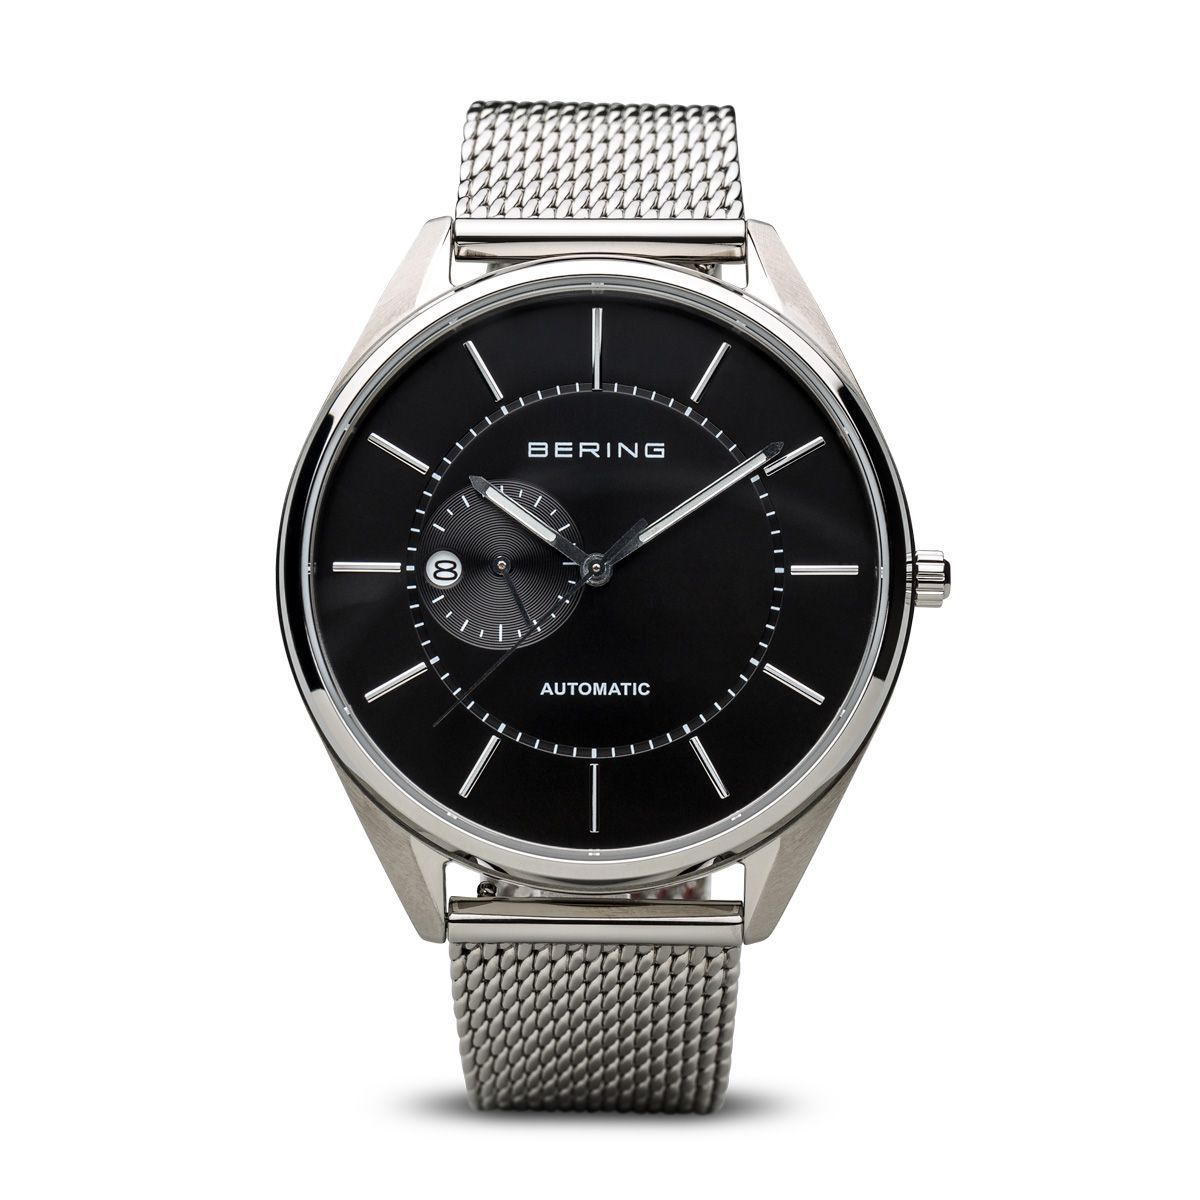 Bering Men's Automatic Watch with Mesh Strap Watches Bering